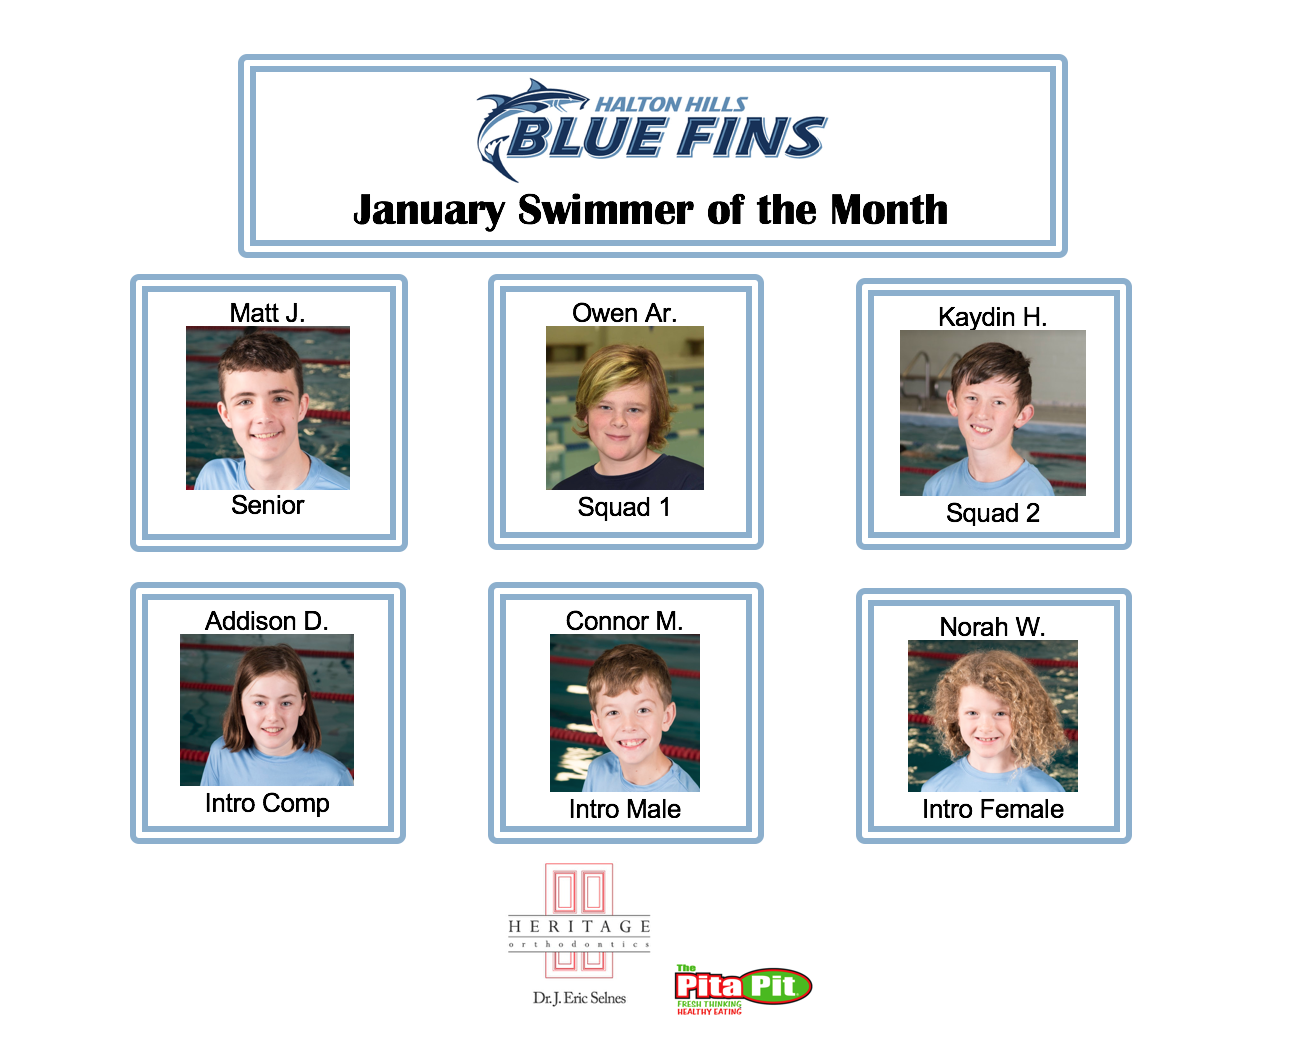 January Swimmer of the Month